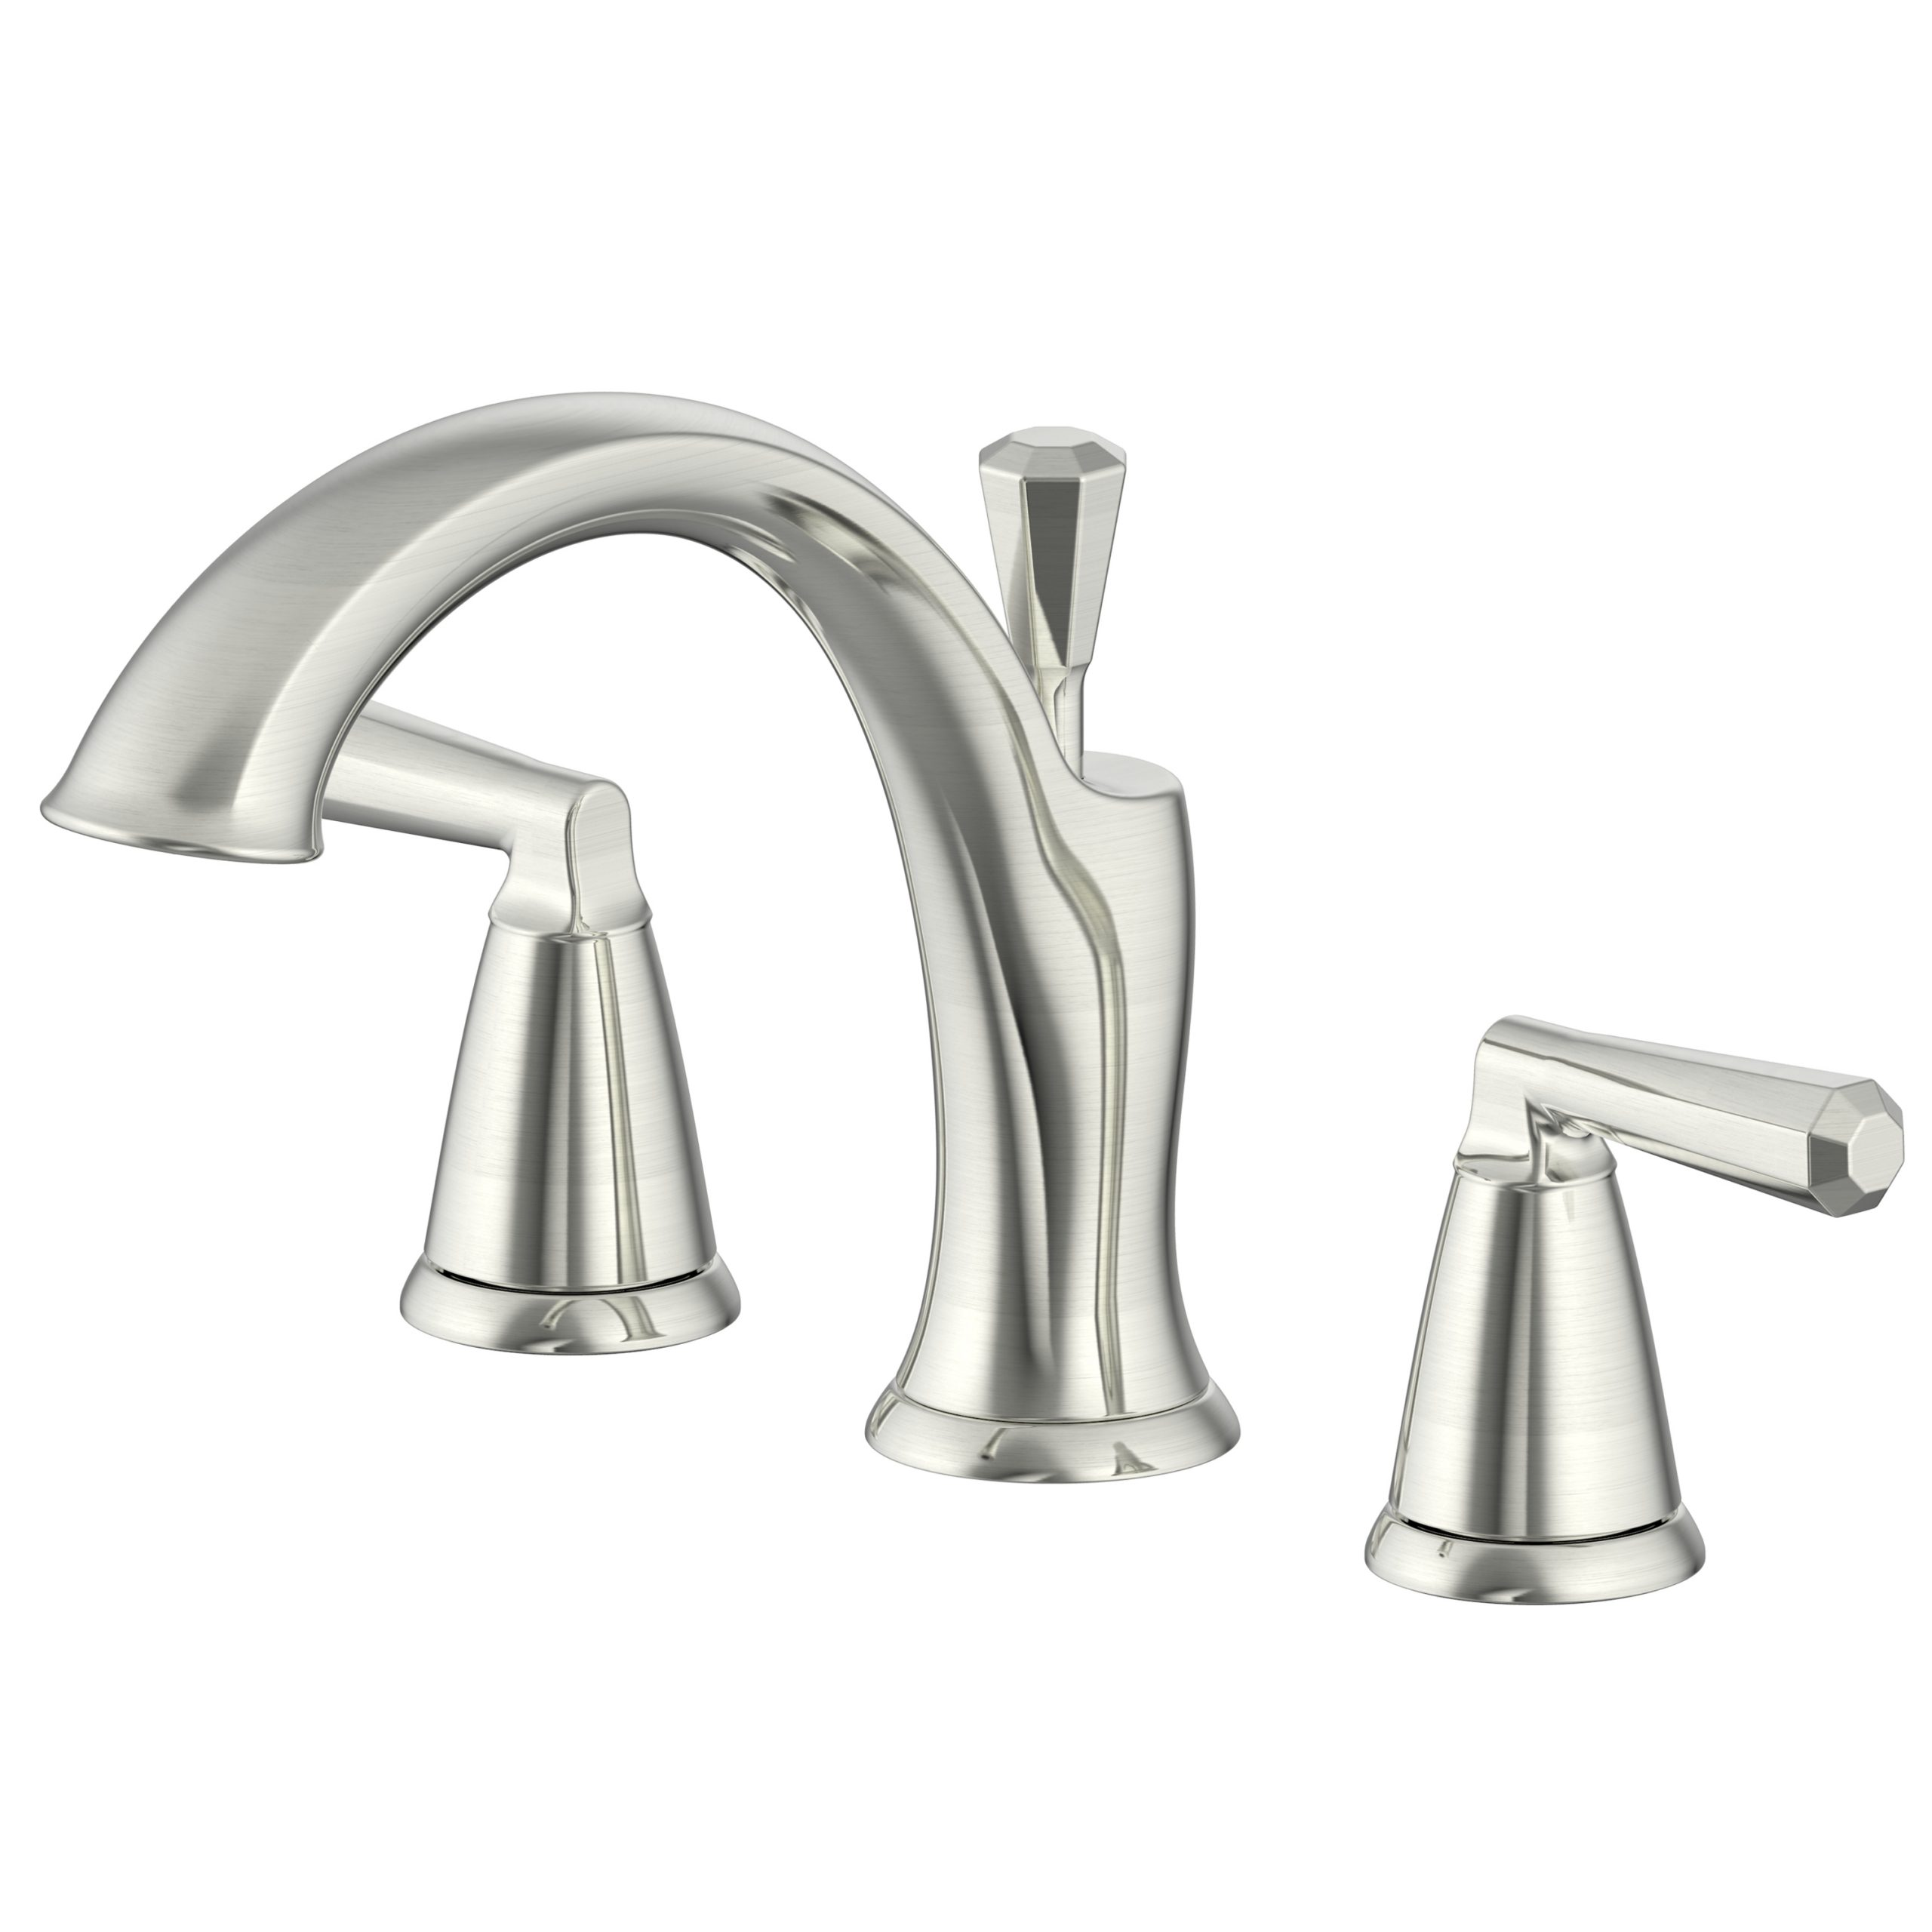 Z Collection Roman Tub Faucet Ultra Faucets